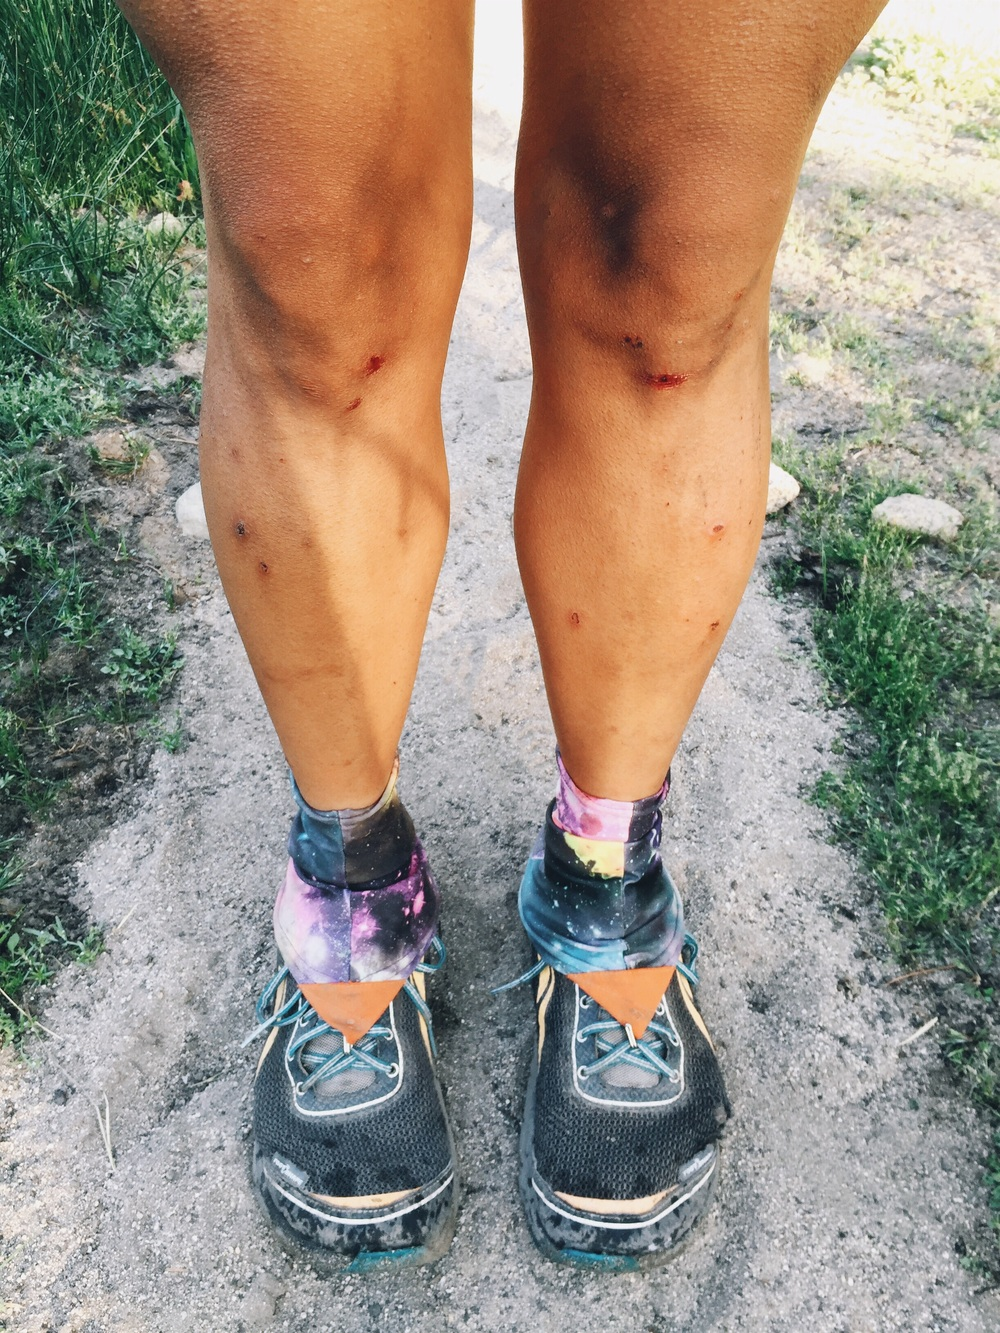 My knees after my fall.